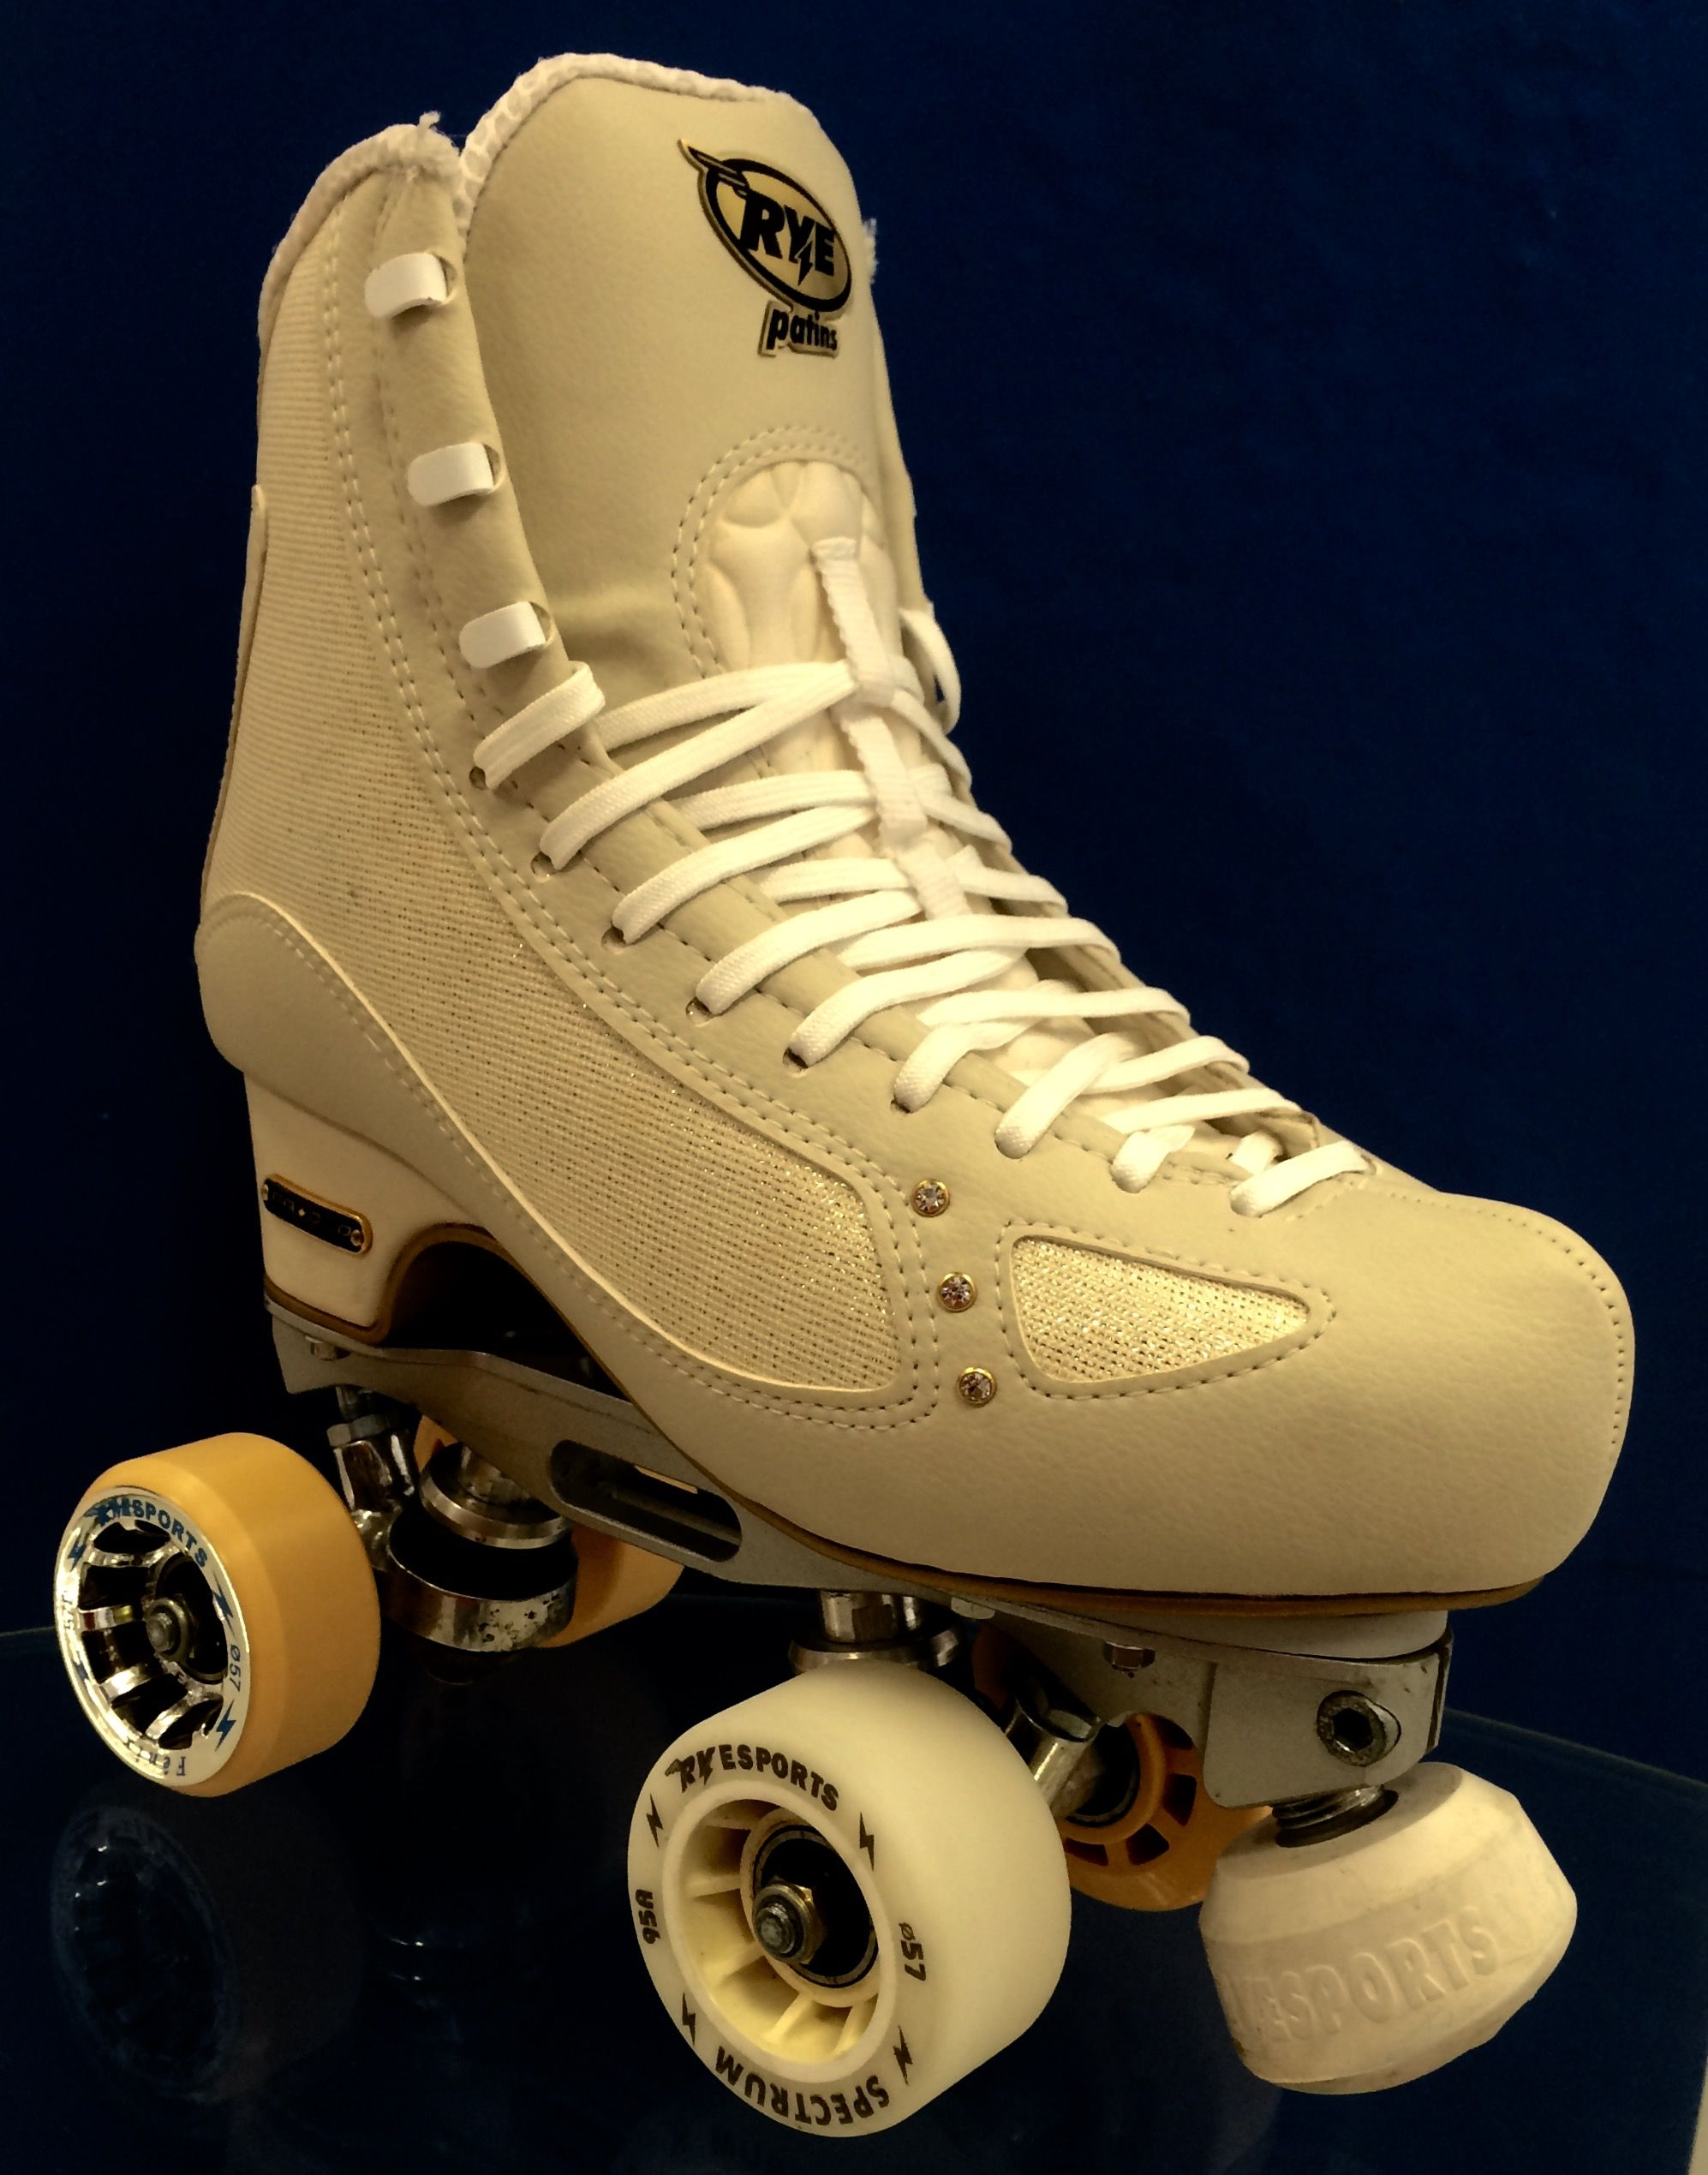 22+ Roller skate shoes for adults ideas ideas